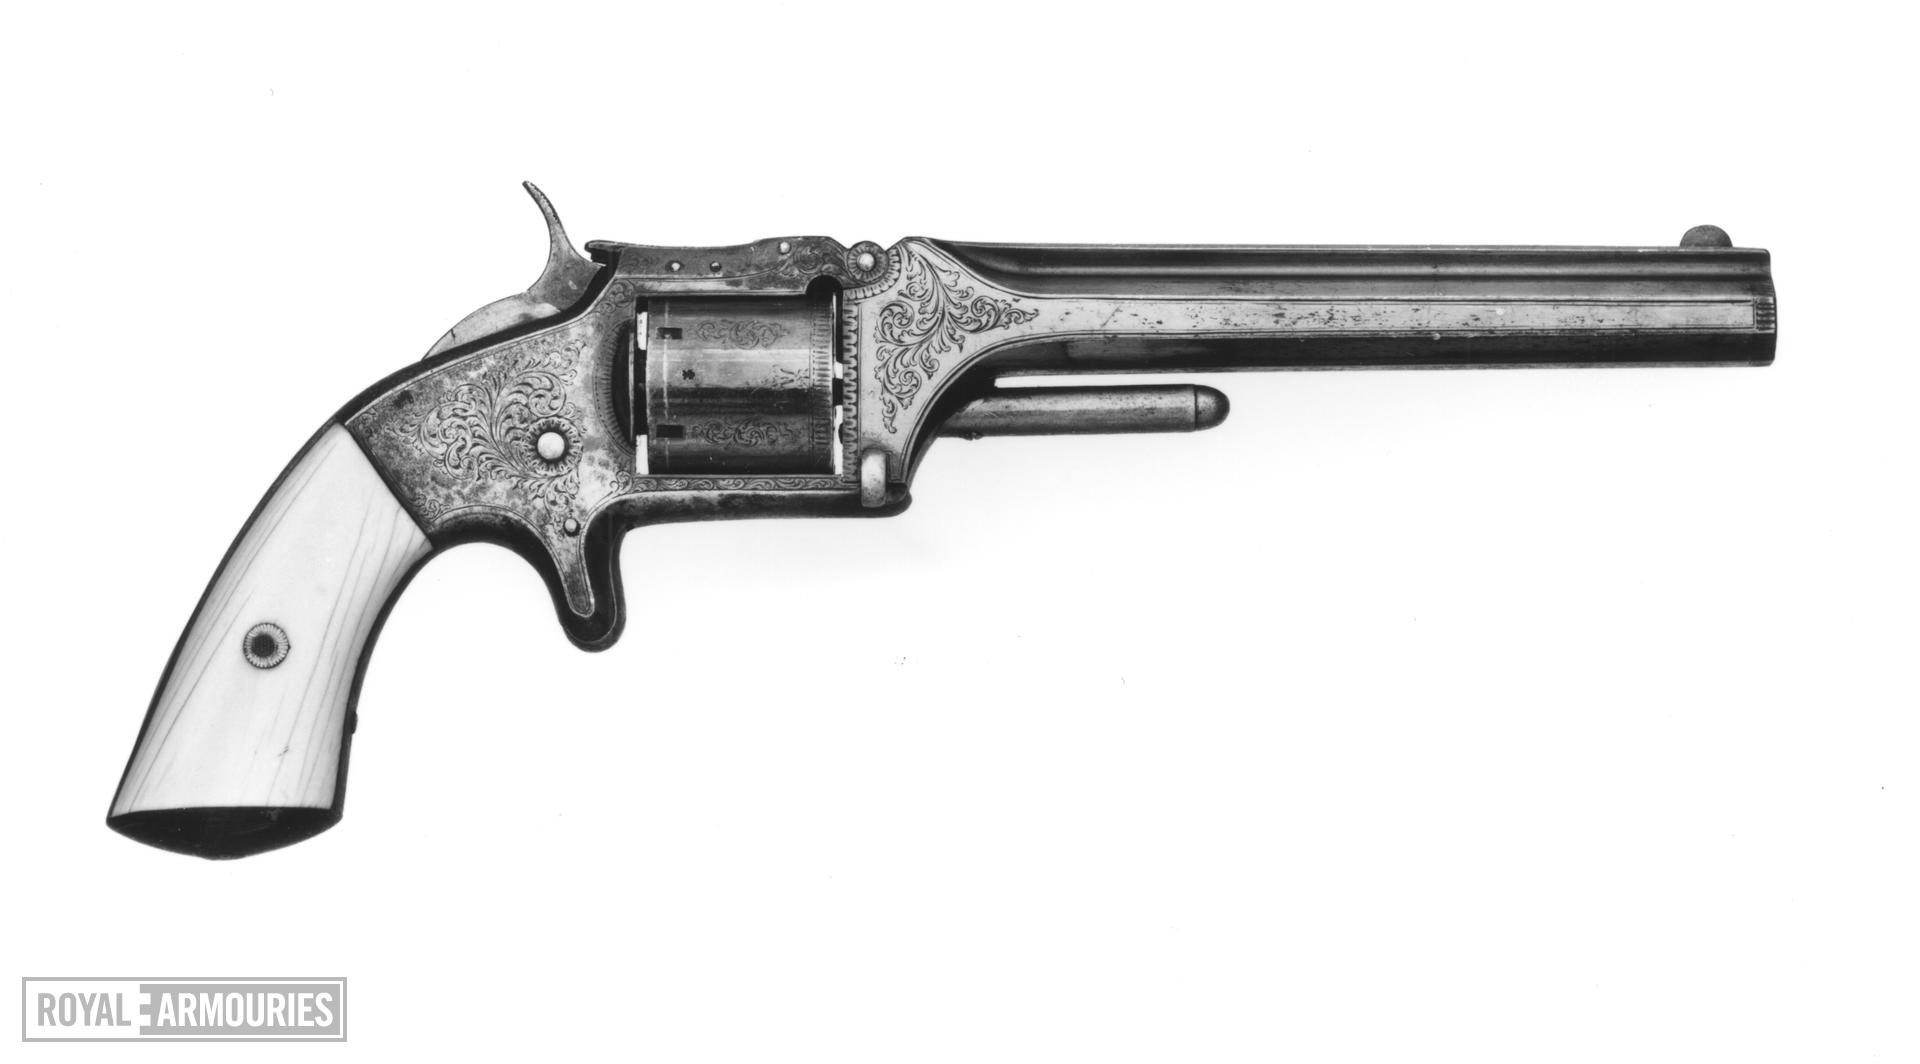 Rimfire six-shot revolver - Webley Copy of a Smith & Wesson Model 2 Retailed by Walter Scott